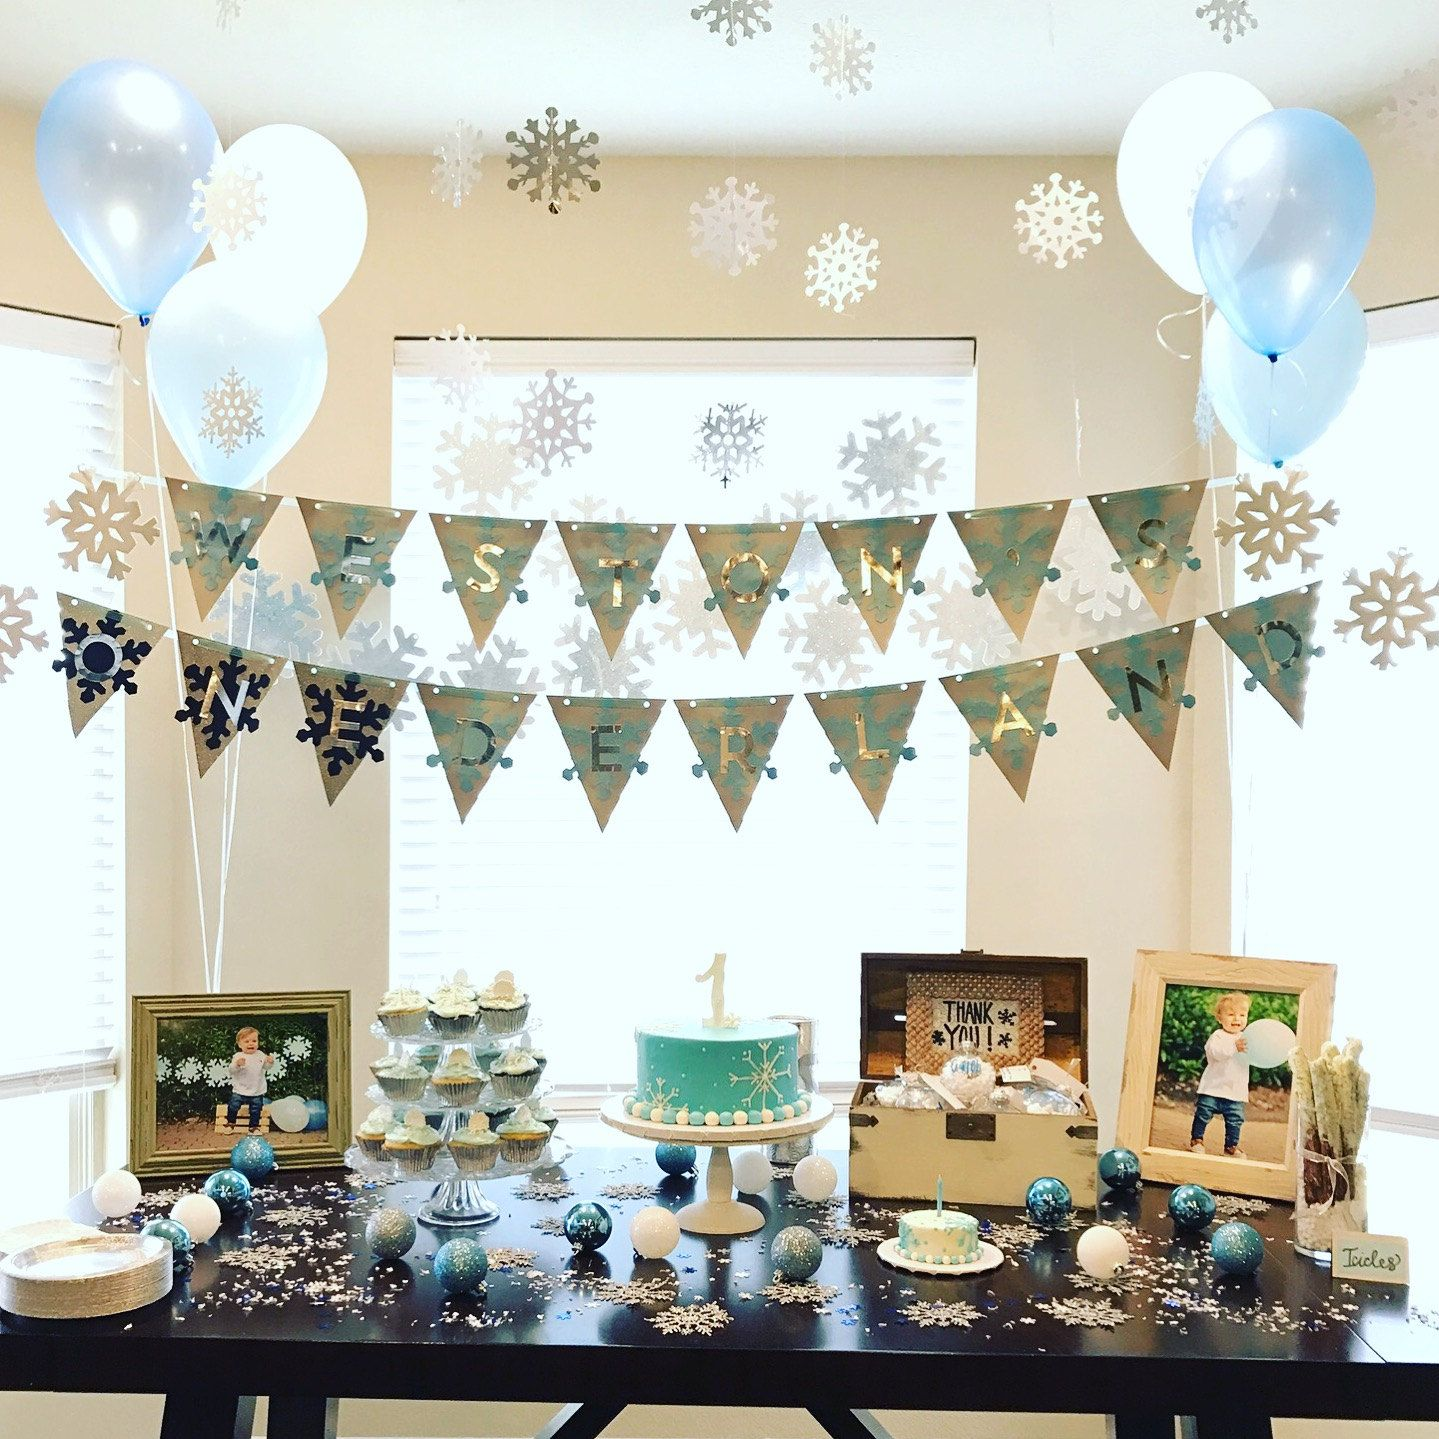 Winter ONEderland decorations/9st Birthday/boy 9st birthday/winter